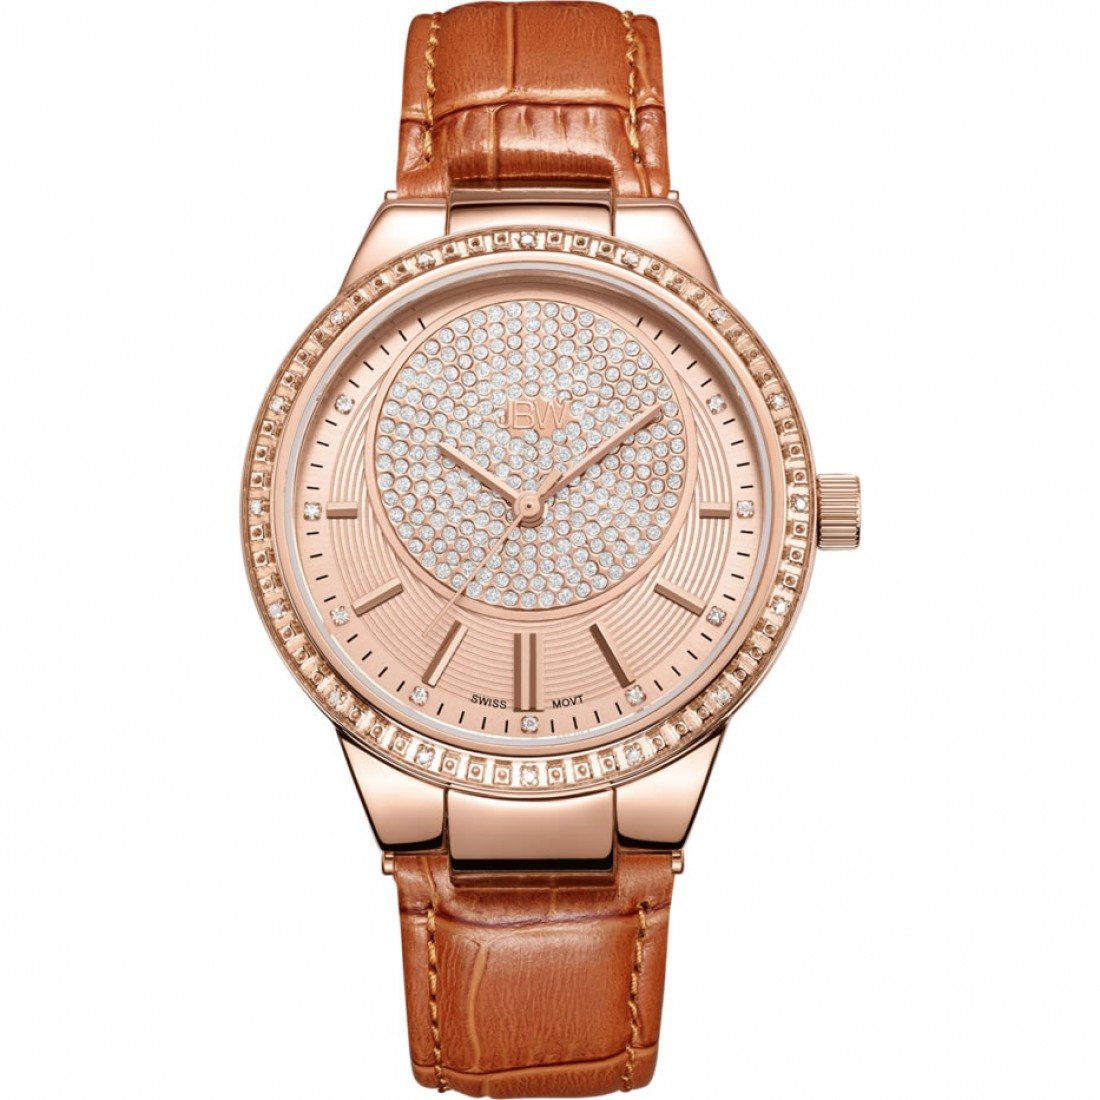 Women's Camille 0.16 ctw 18k Rose Gold-Plated Stainless Steel Diamond Watch J6345D